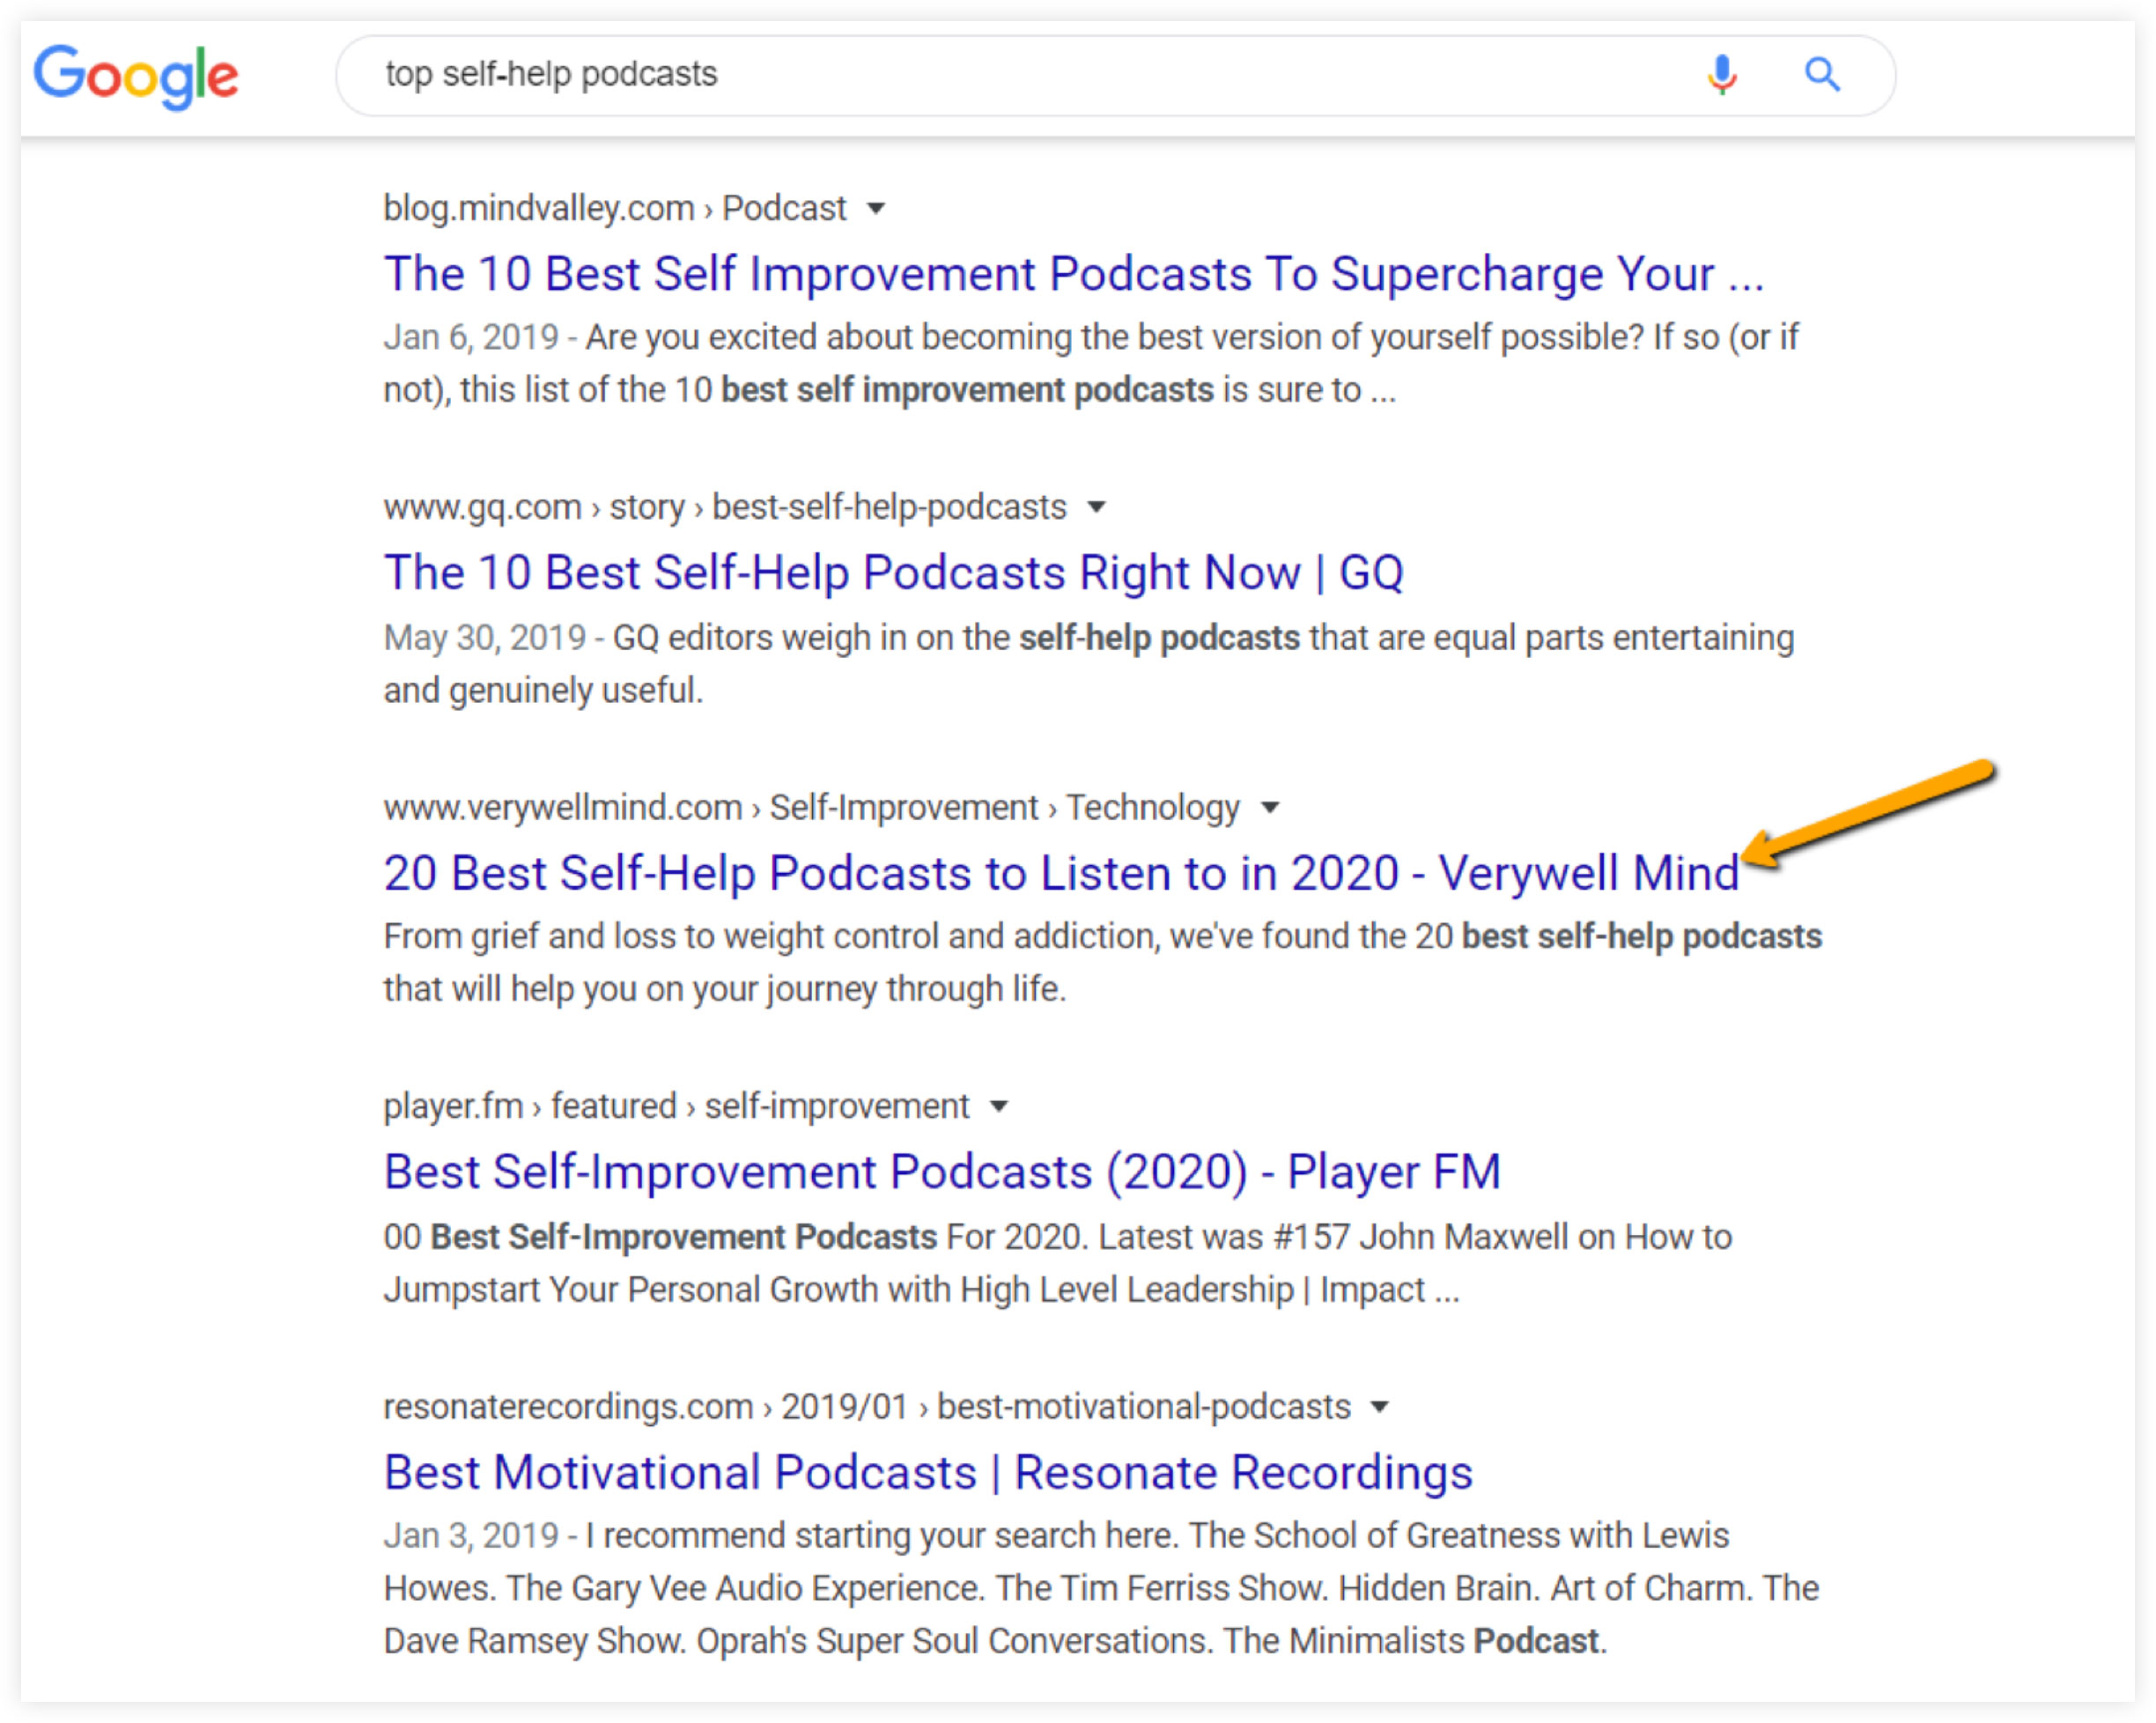 Google Search Results for Top Self-Help Podcasts